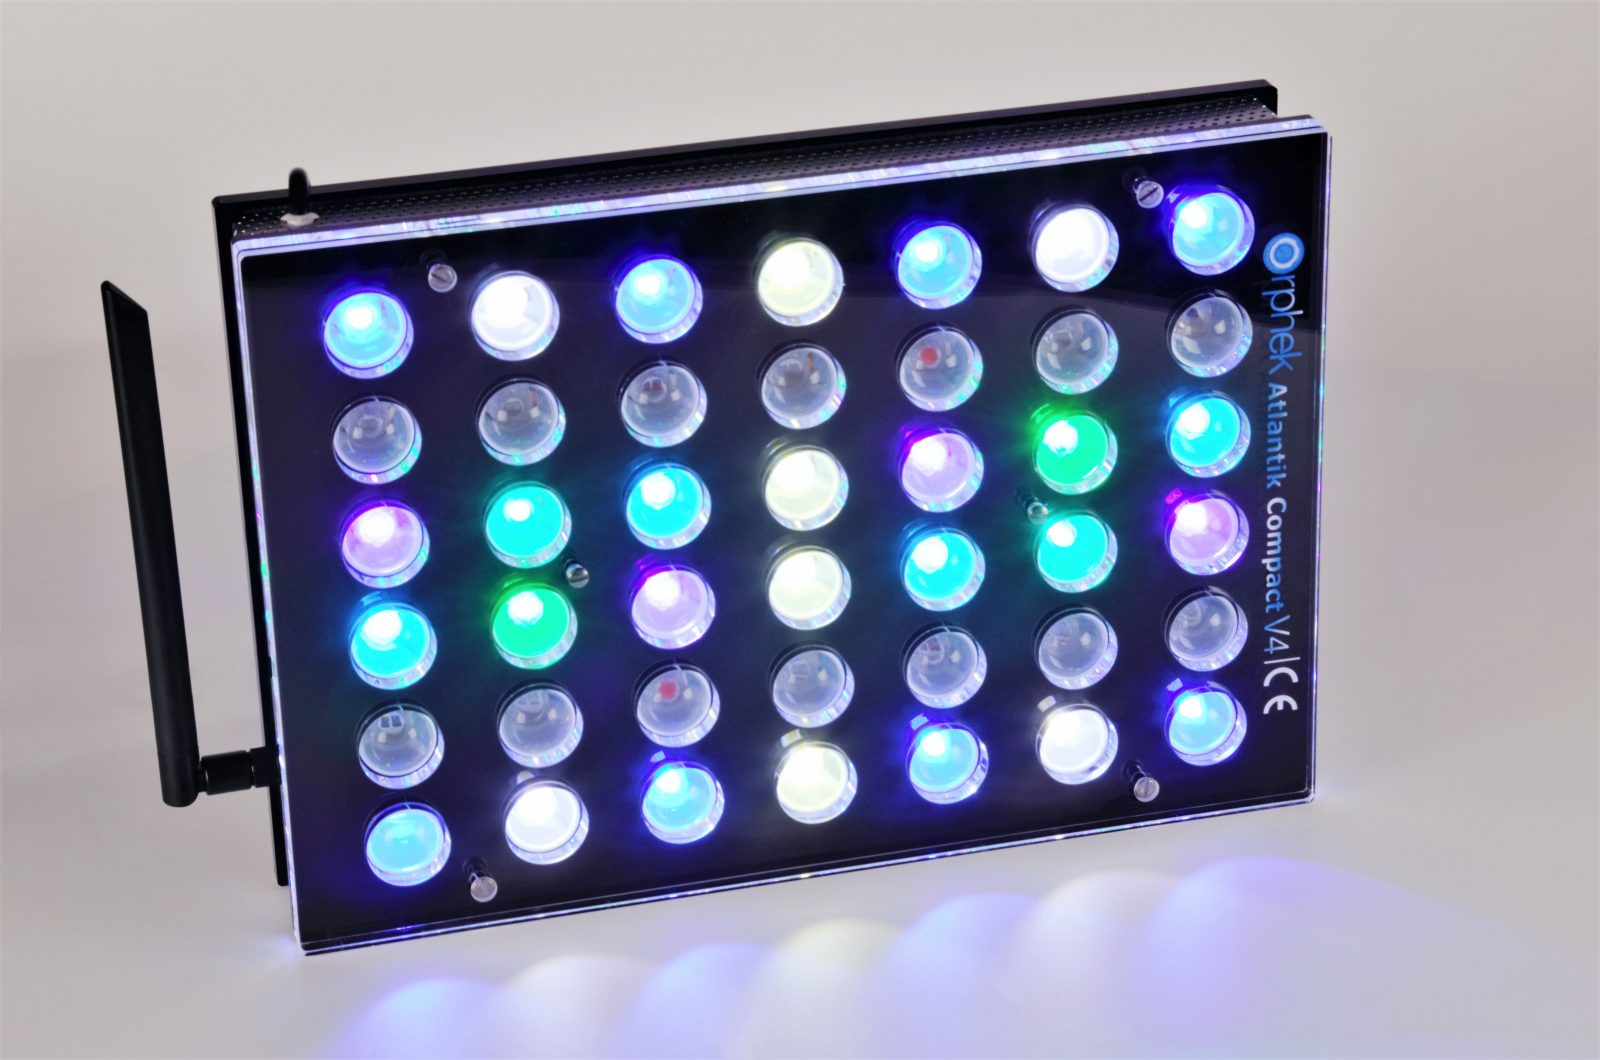 Orphek-Aquarium-LED-Lighting-Atlantik -Compact-V4-light -on -channel 1+2